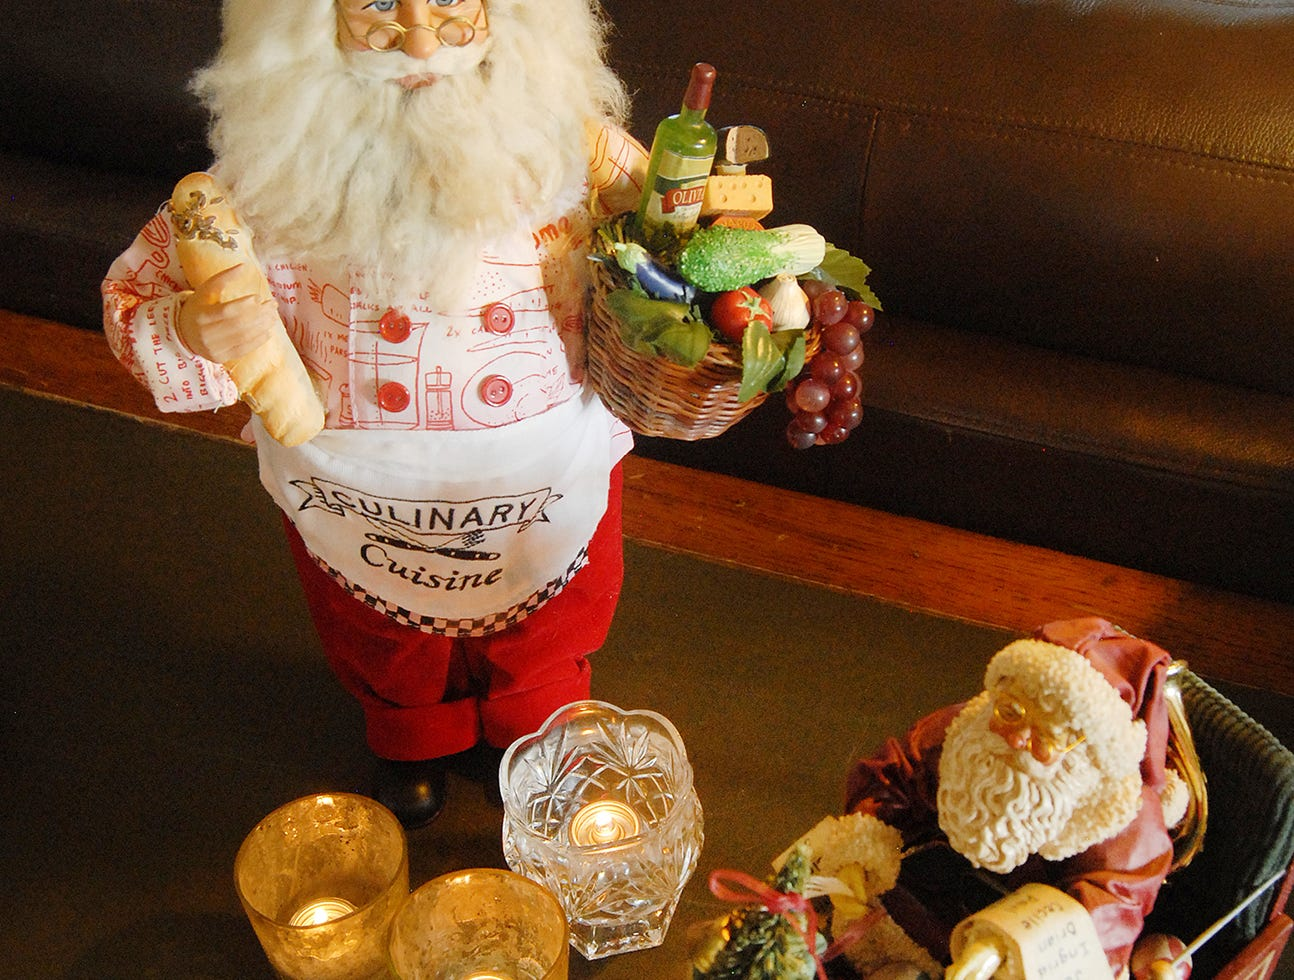 Marianne's favorite Christmas decoration is this Santa Chef, given to her by loyal guest. It sits in the main room of the inn.